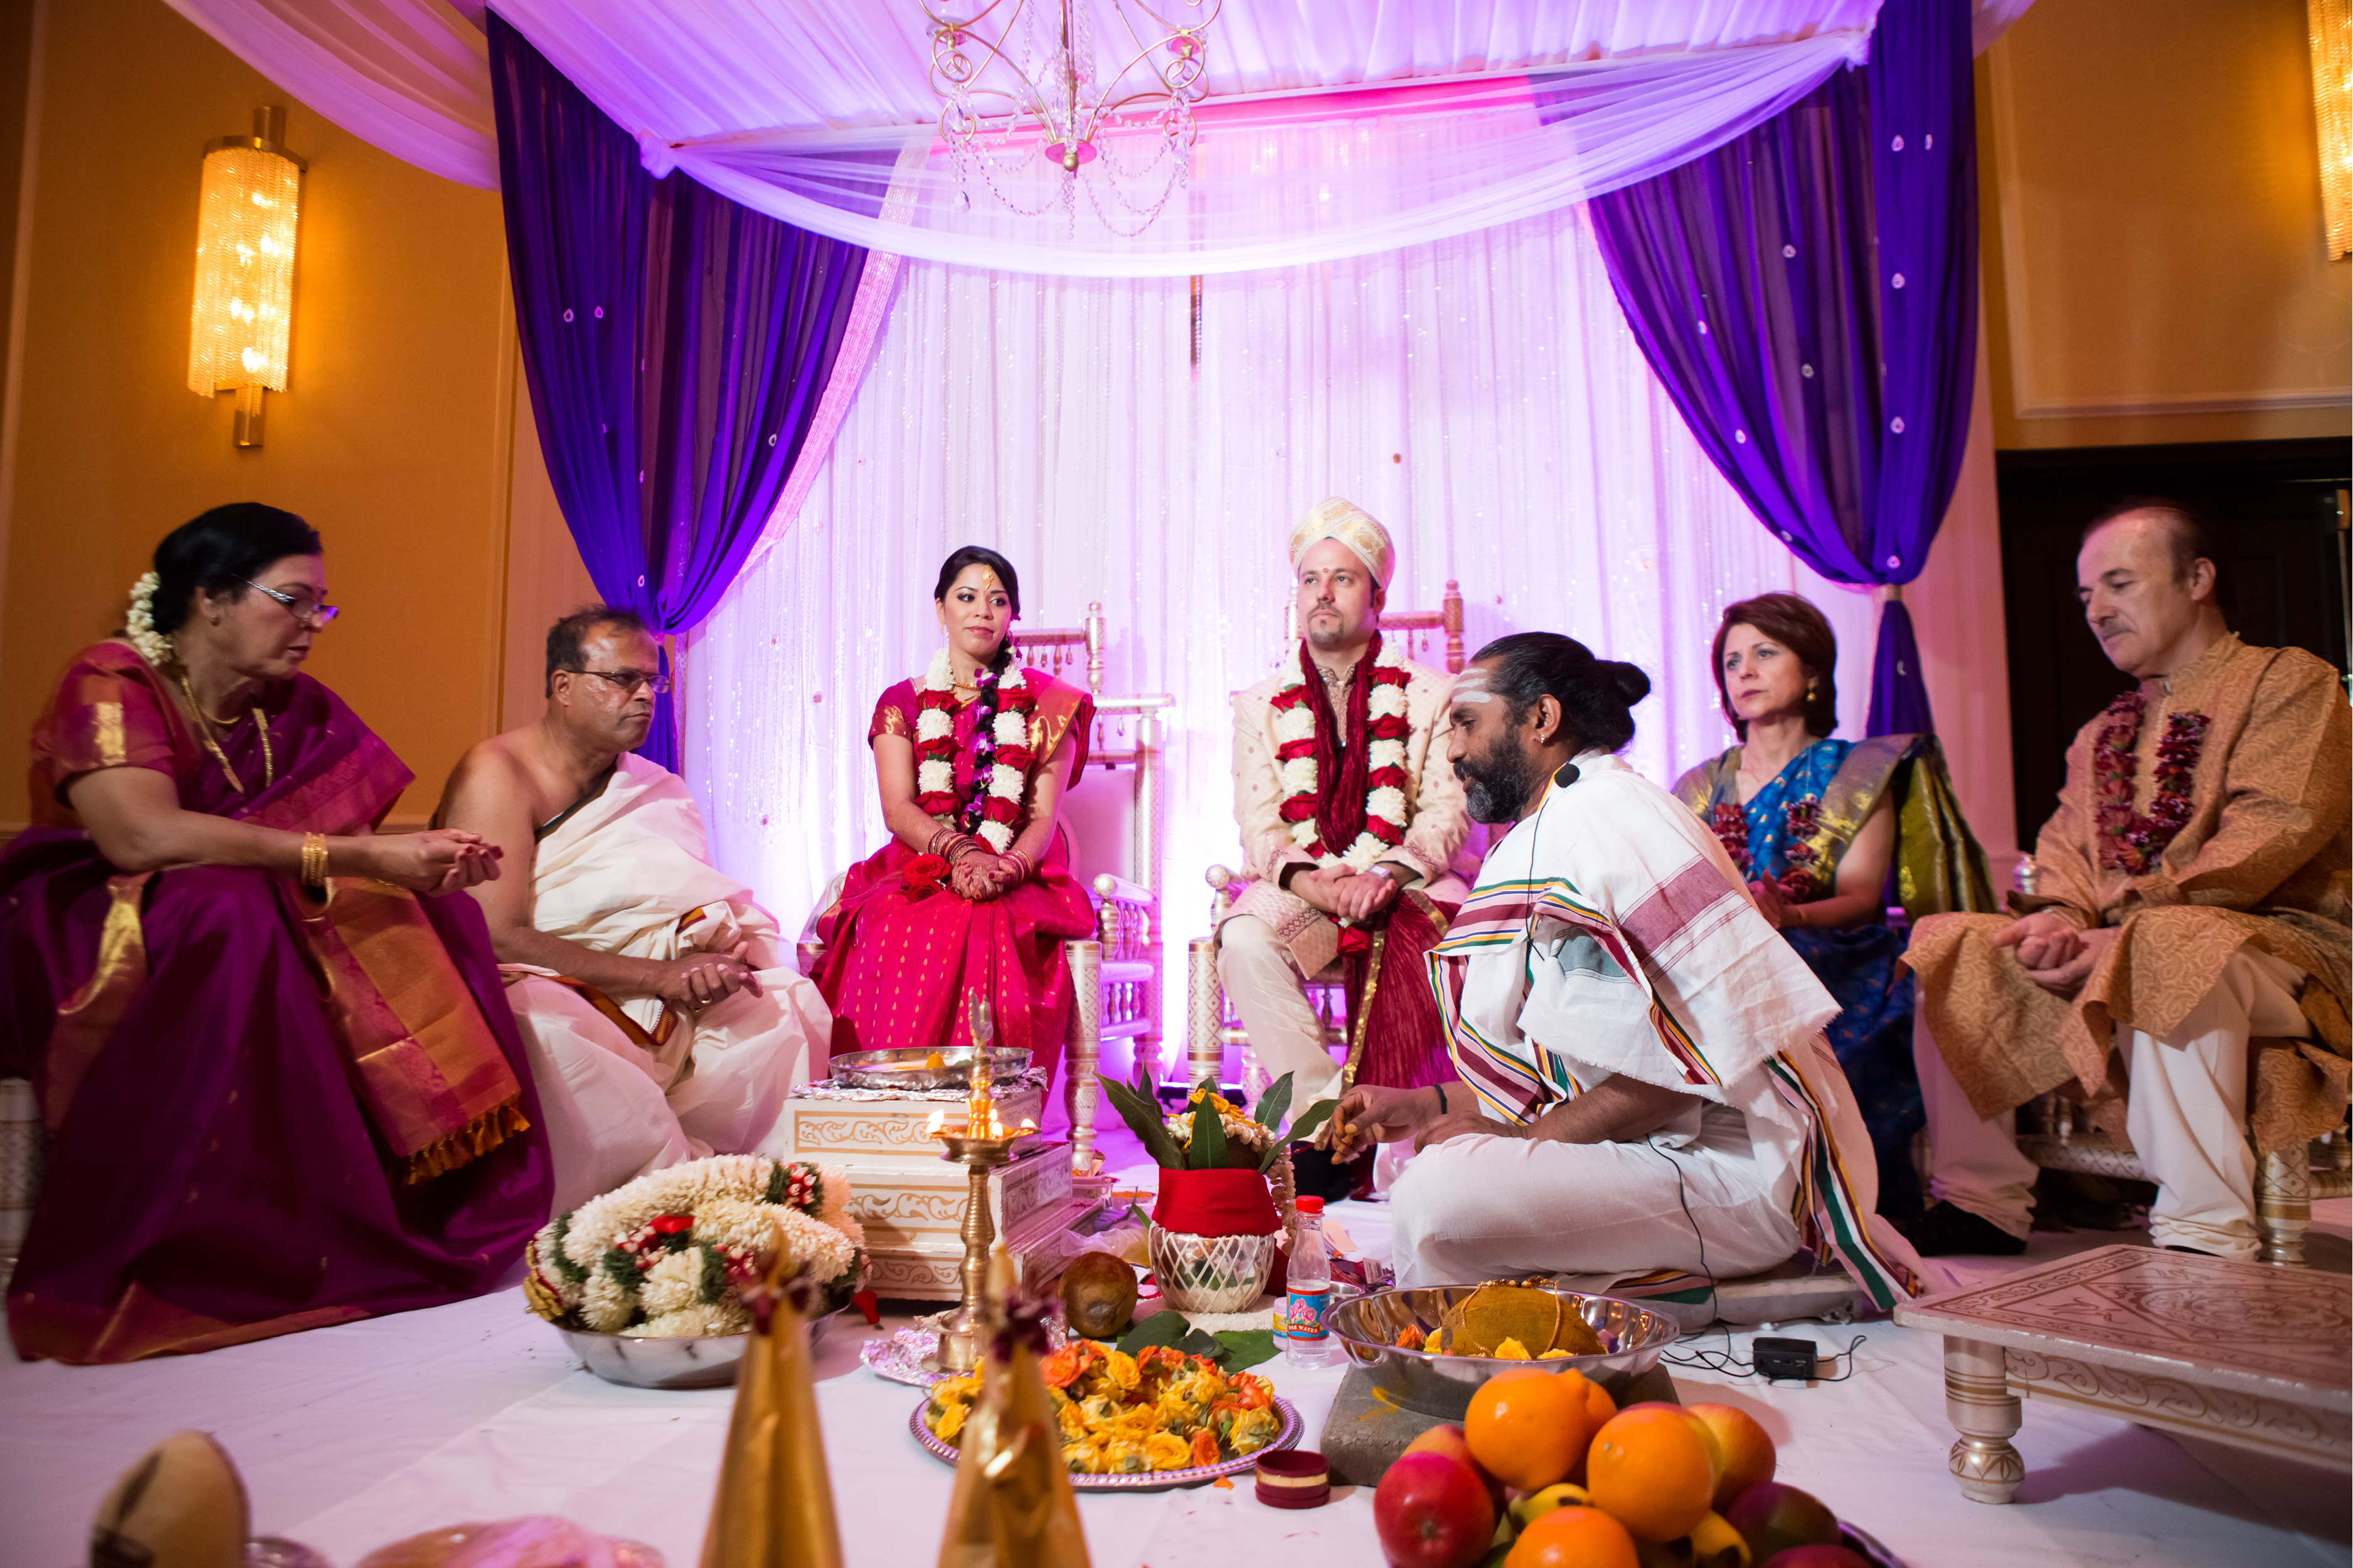 Emma_cleary_photography Indian Wedding15